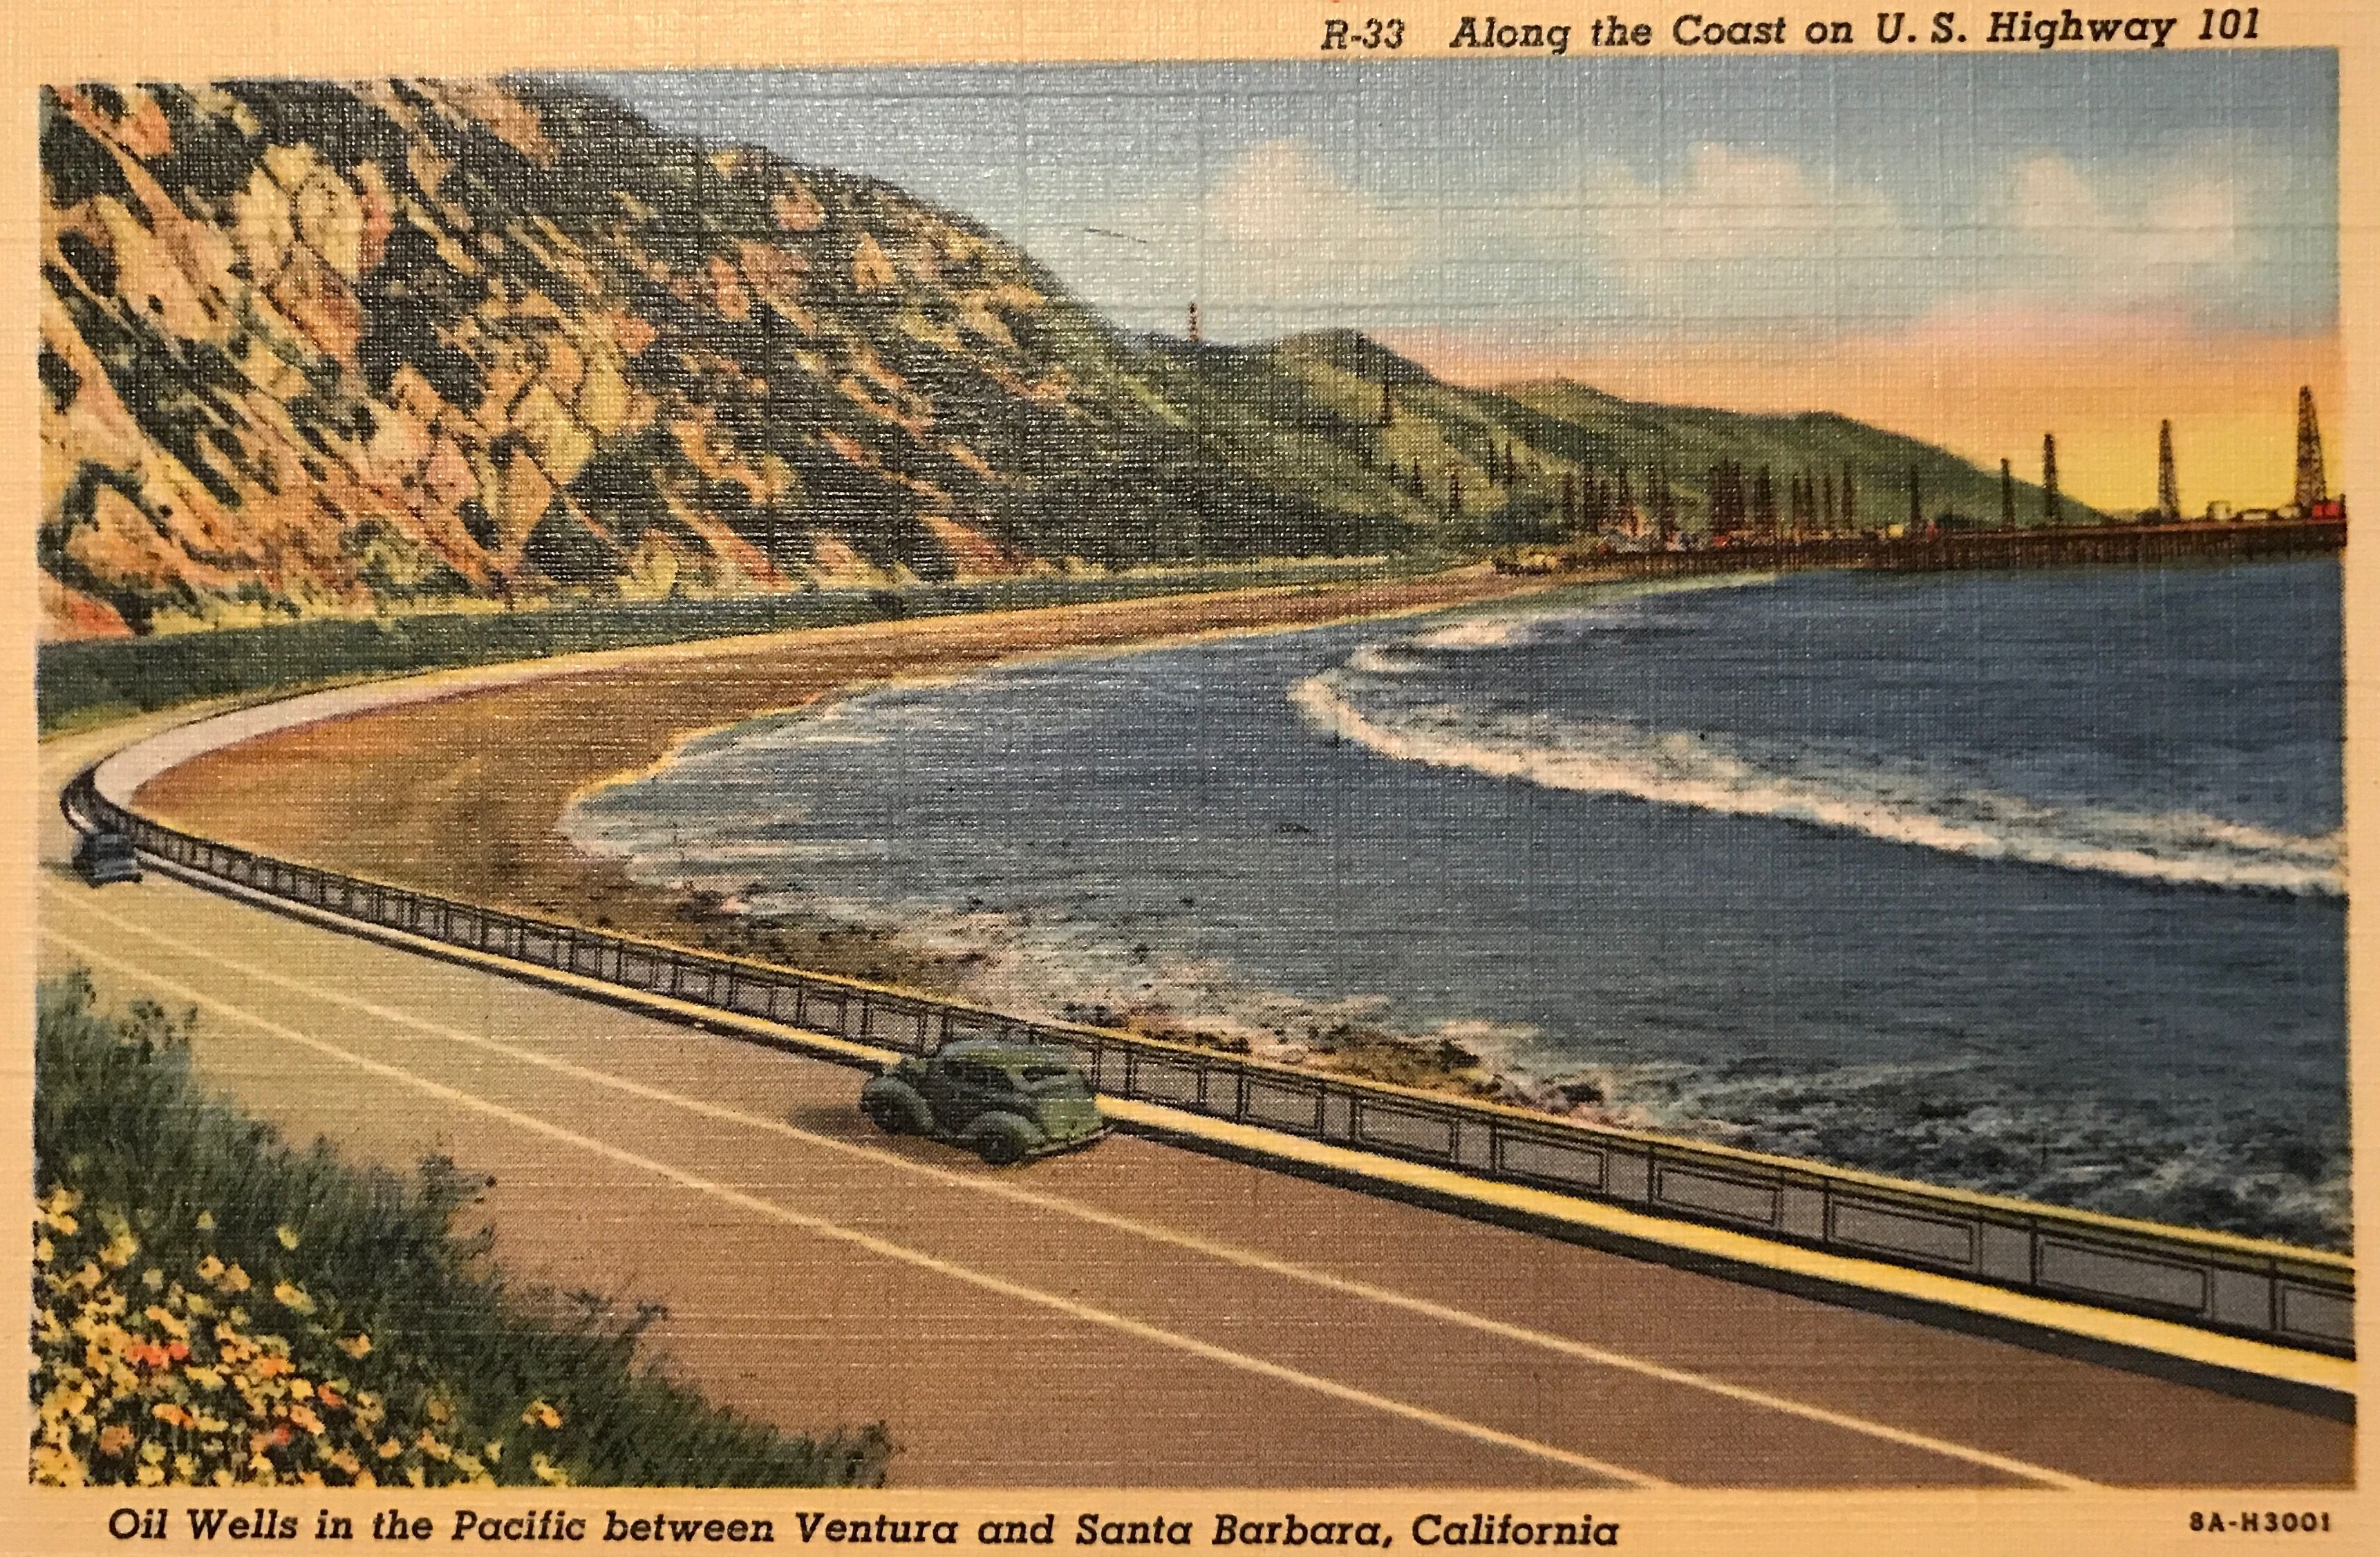 Seawall Section Built In 1926 Replaced Rincon Causeway A Wooden Structure Built In 1912 Country Roads Sea Wall California Road